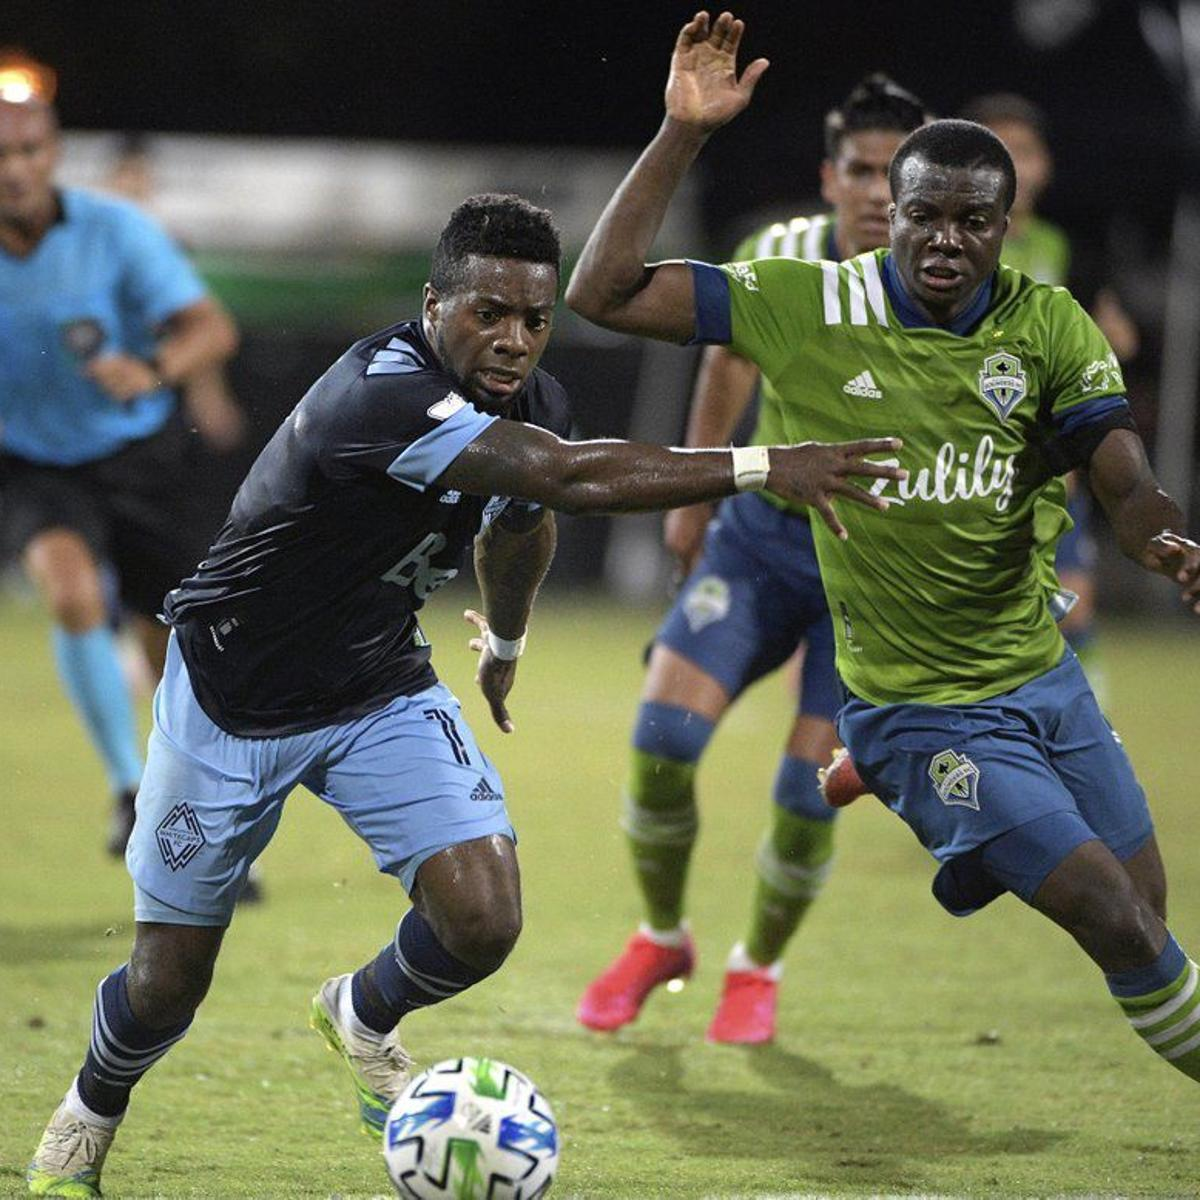 After Rough Start Mls Bubble In Florida Seems To Be Working Sports Dailyrecordnews Com